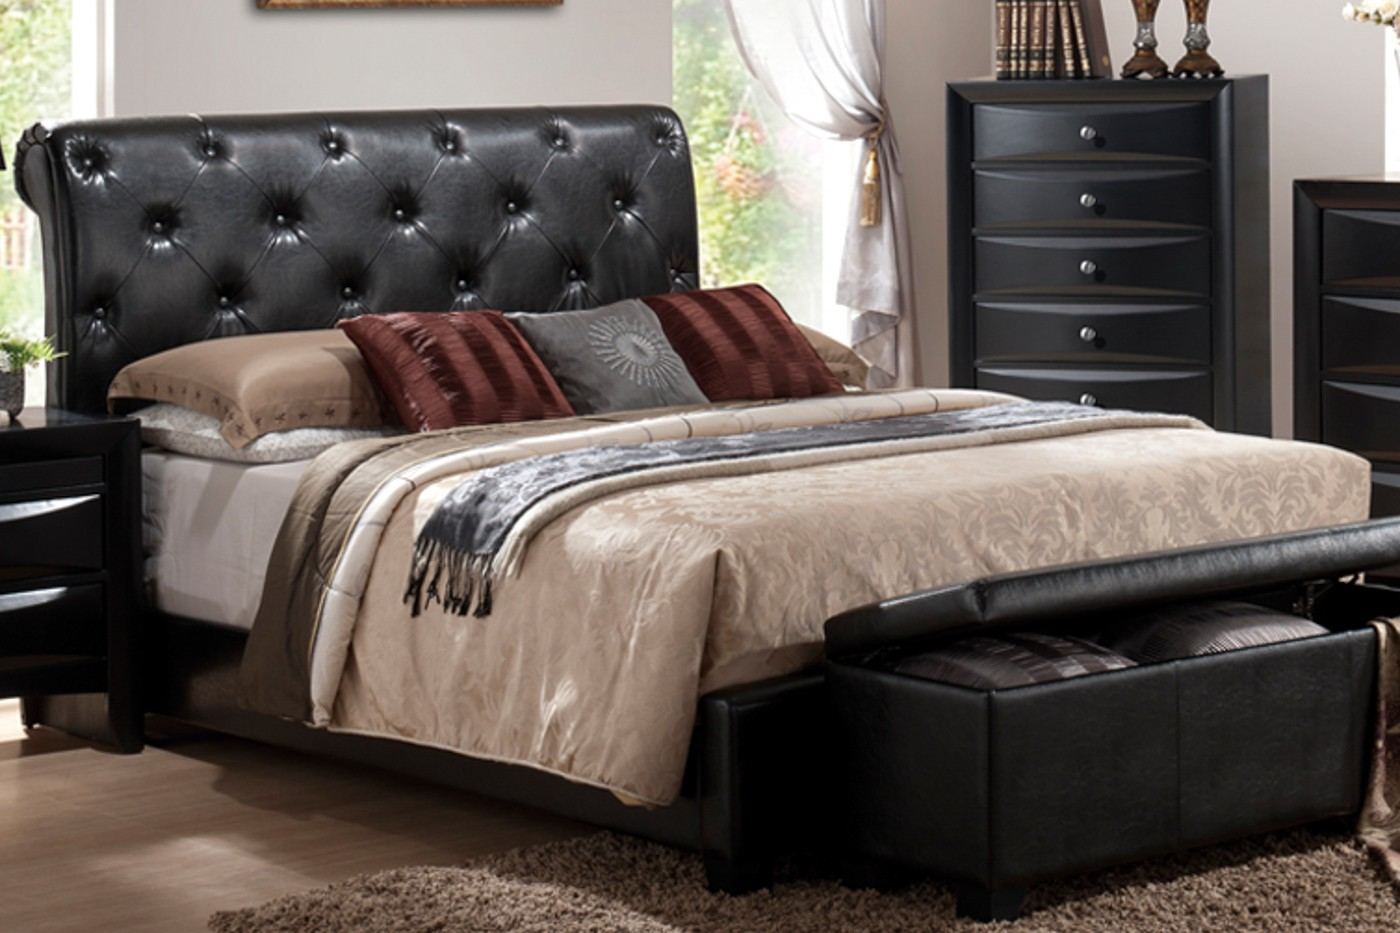 Milan Queen Bed Frame Beds Bedroom